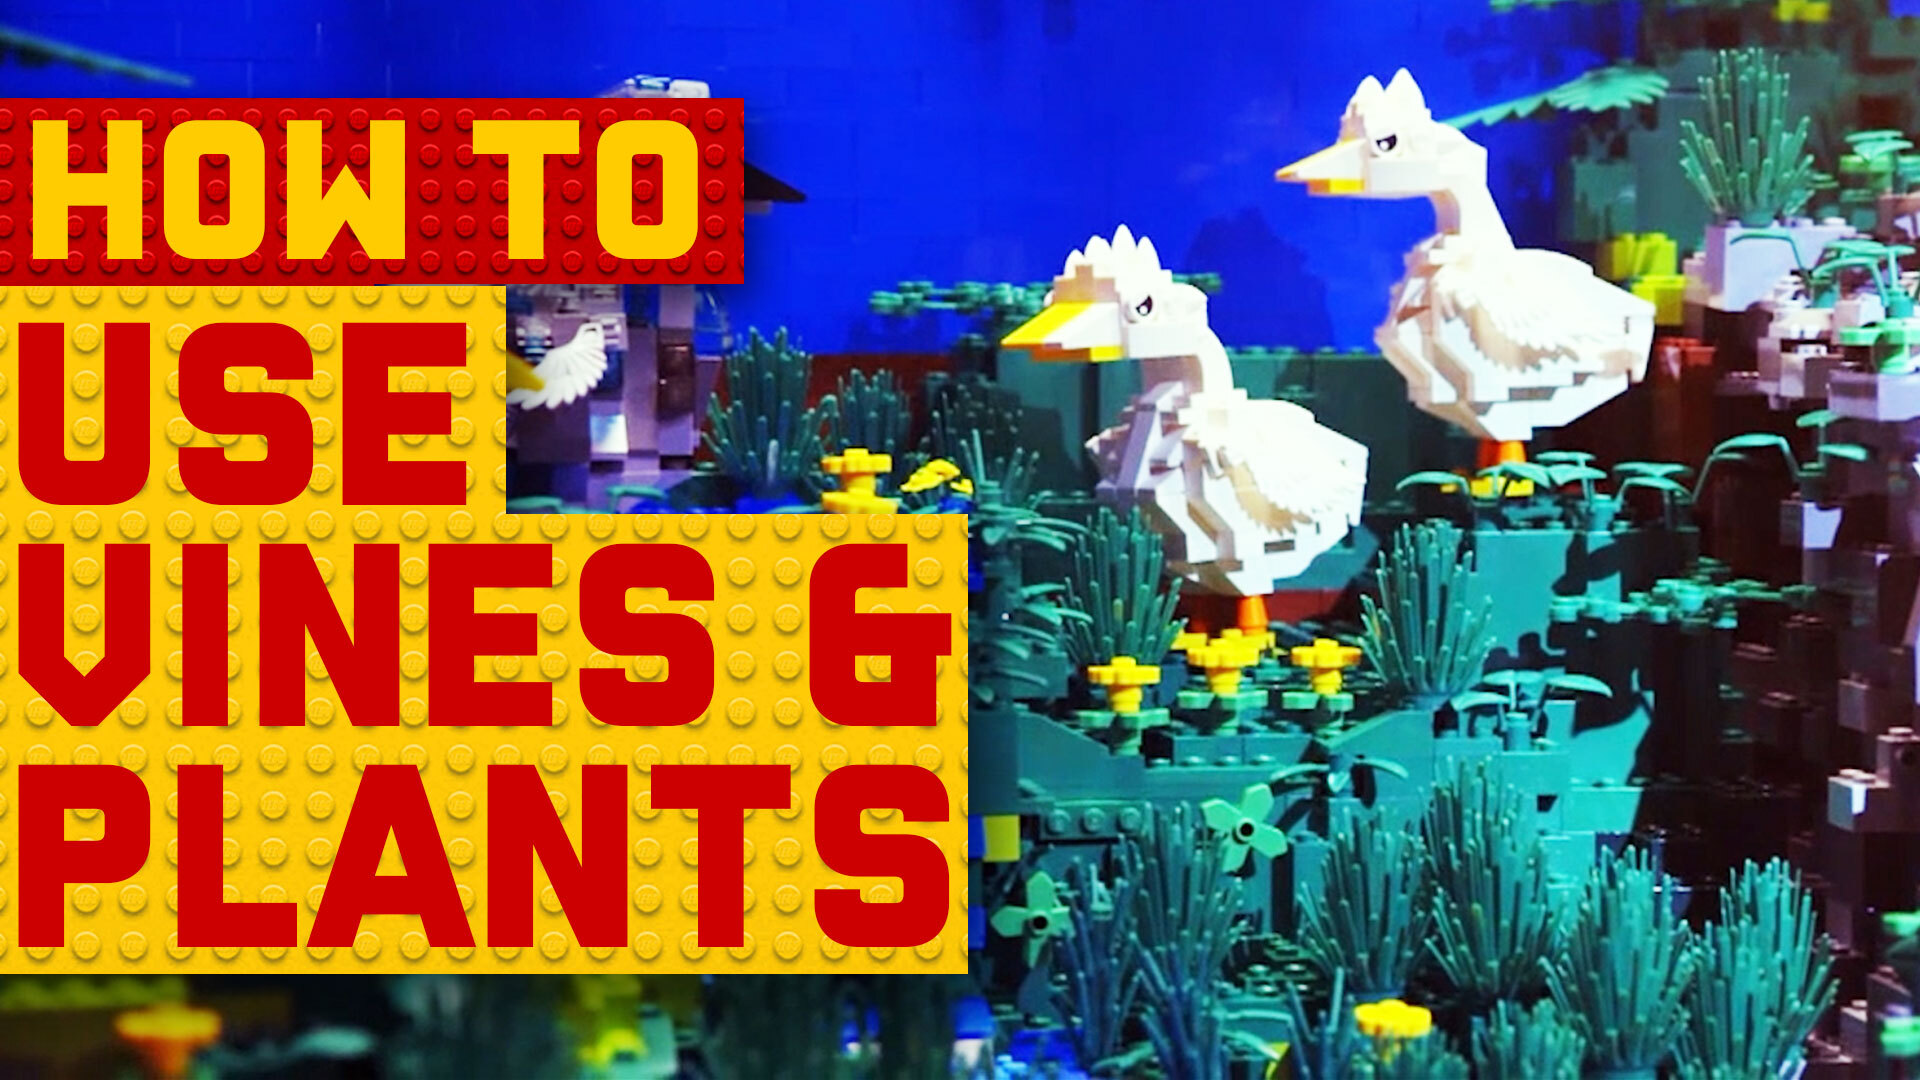 How to incorporate plants in your next LEGO creation